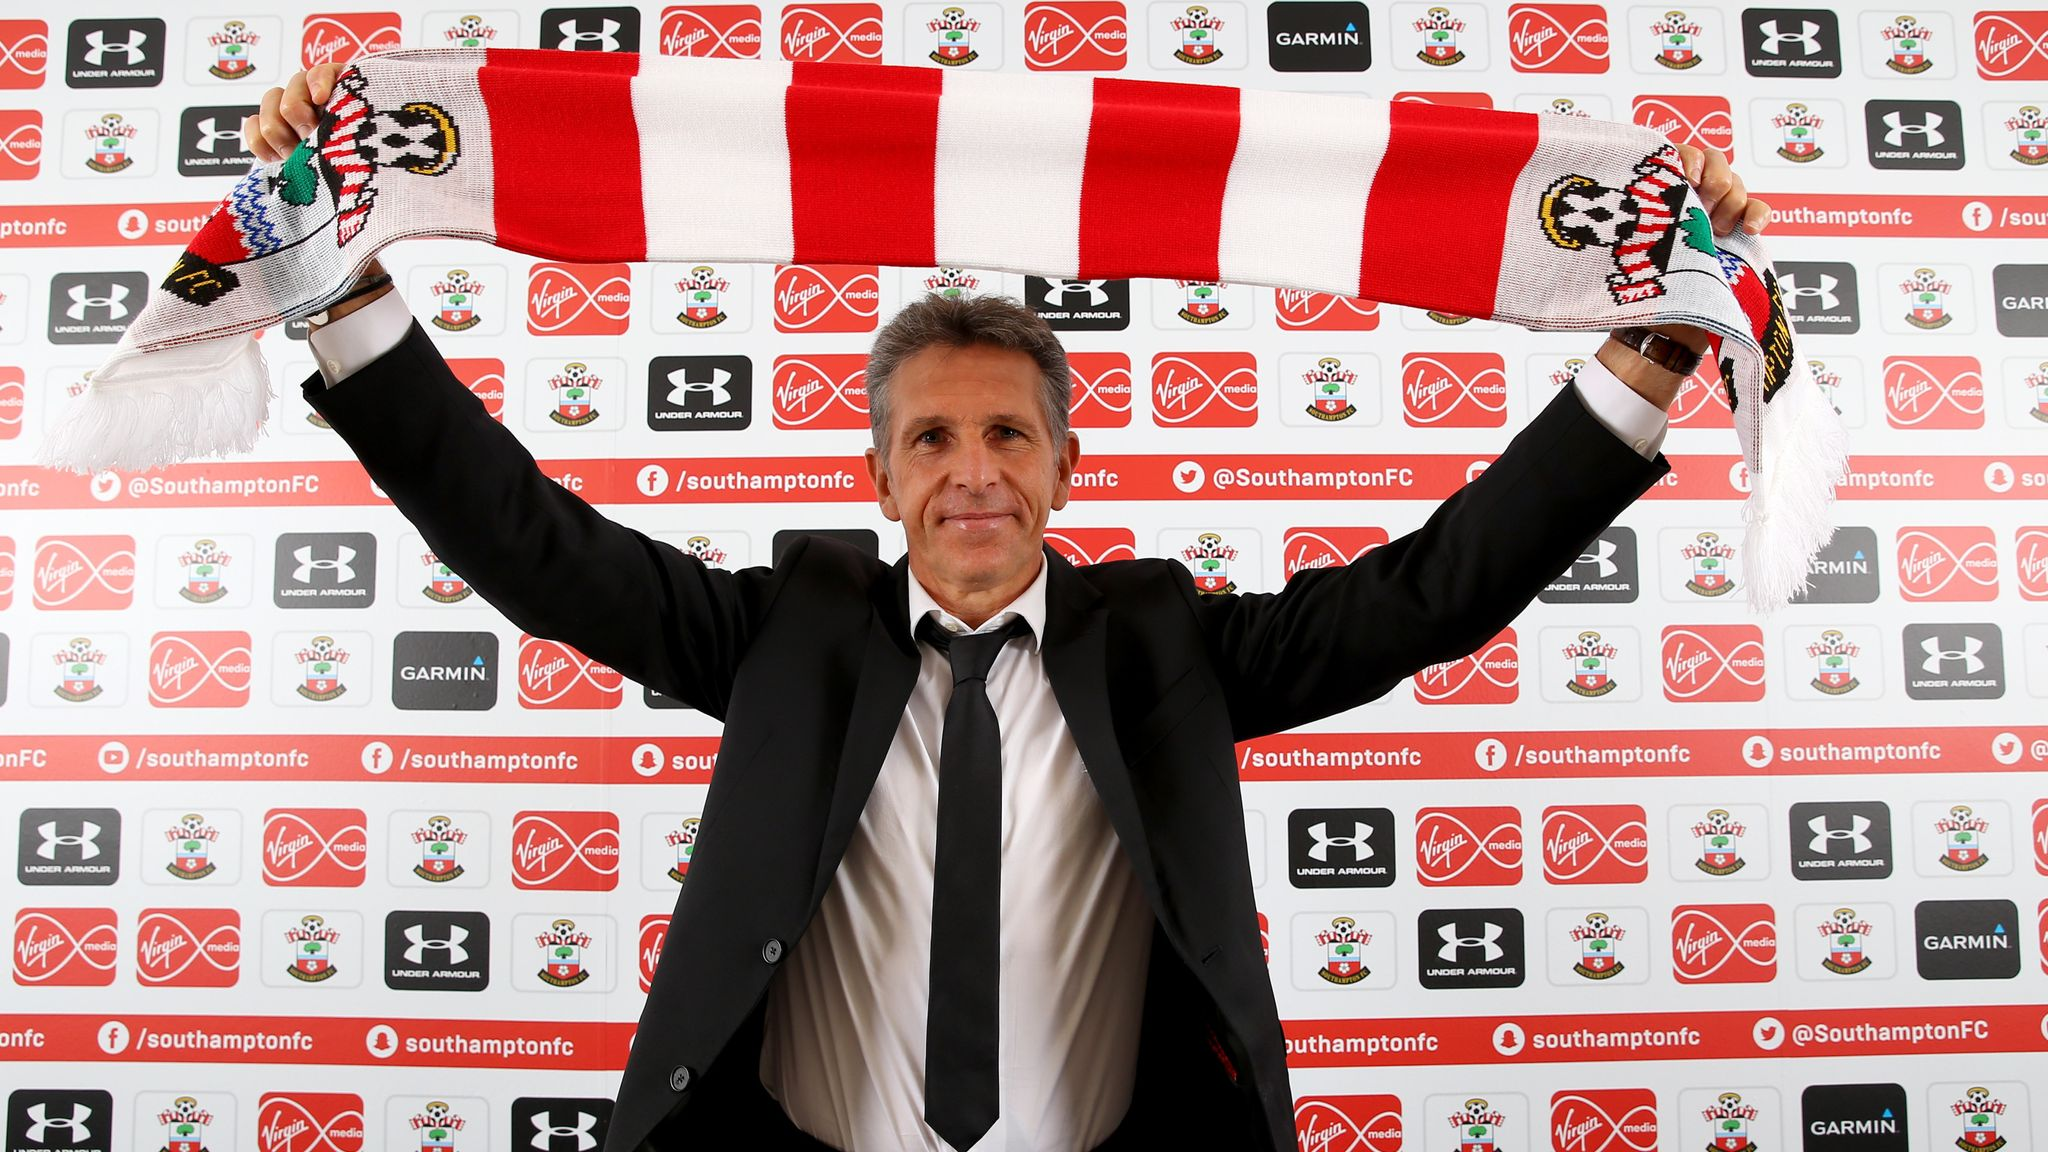 Claude Puel confirmed as new Southampton manager | Football News | Sky  Sports